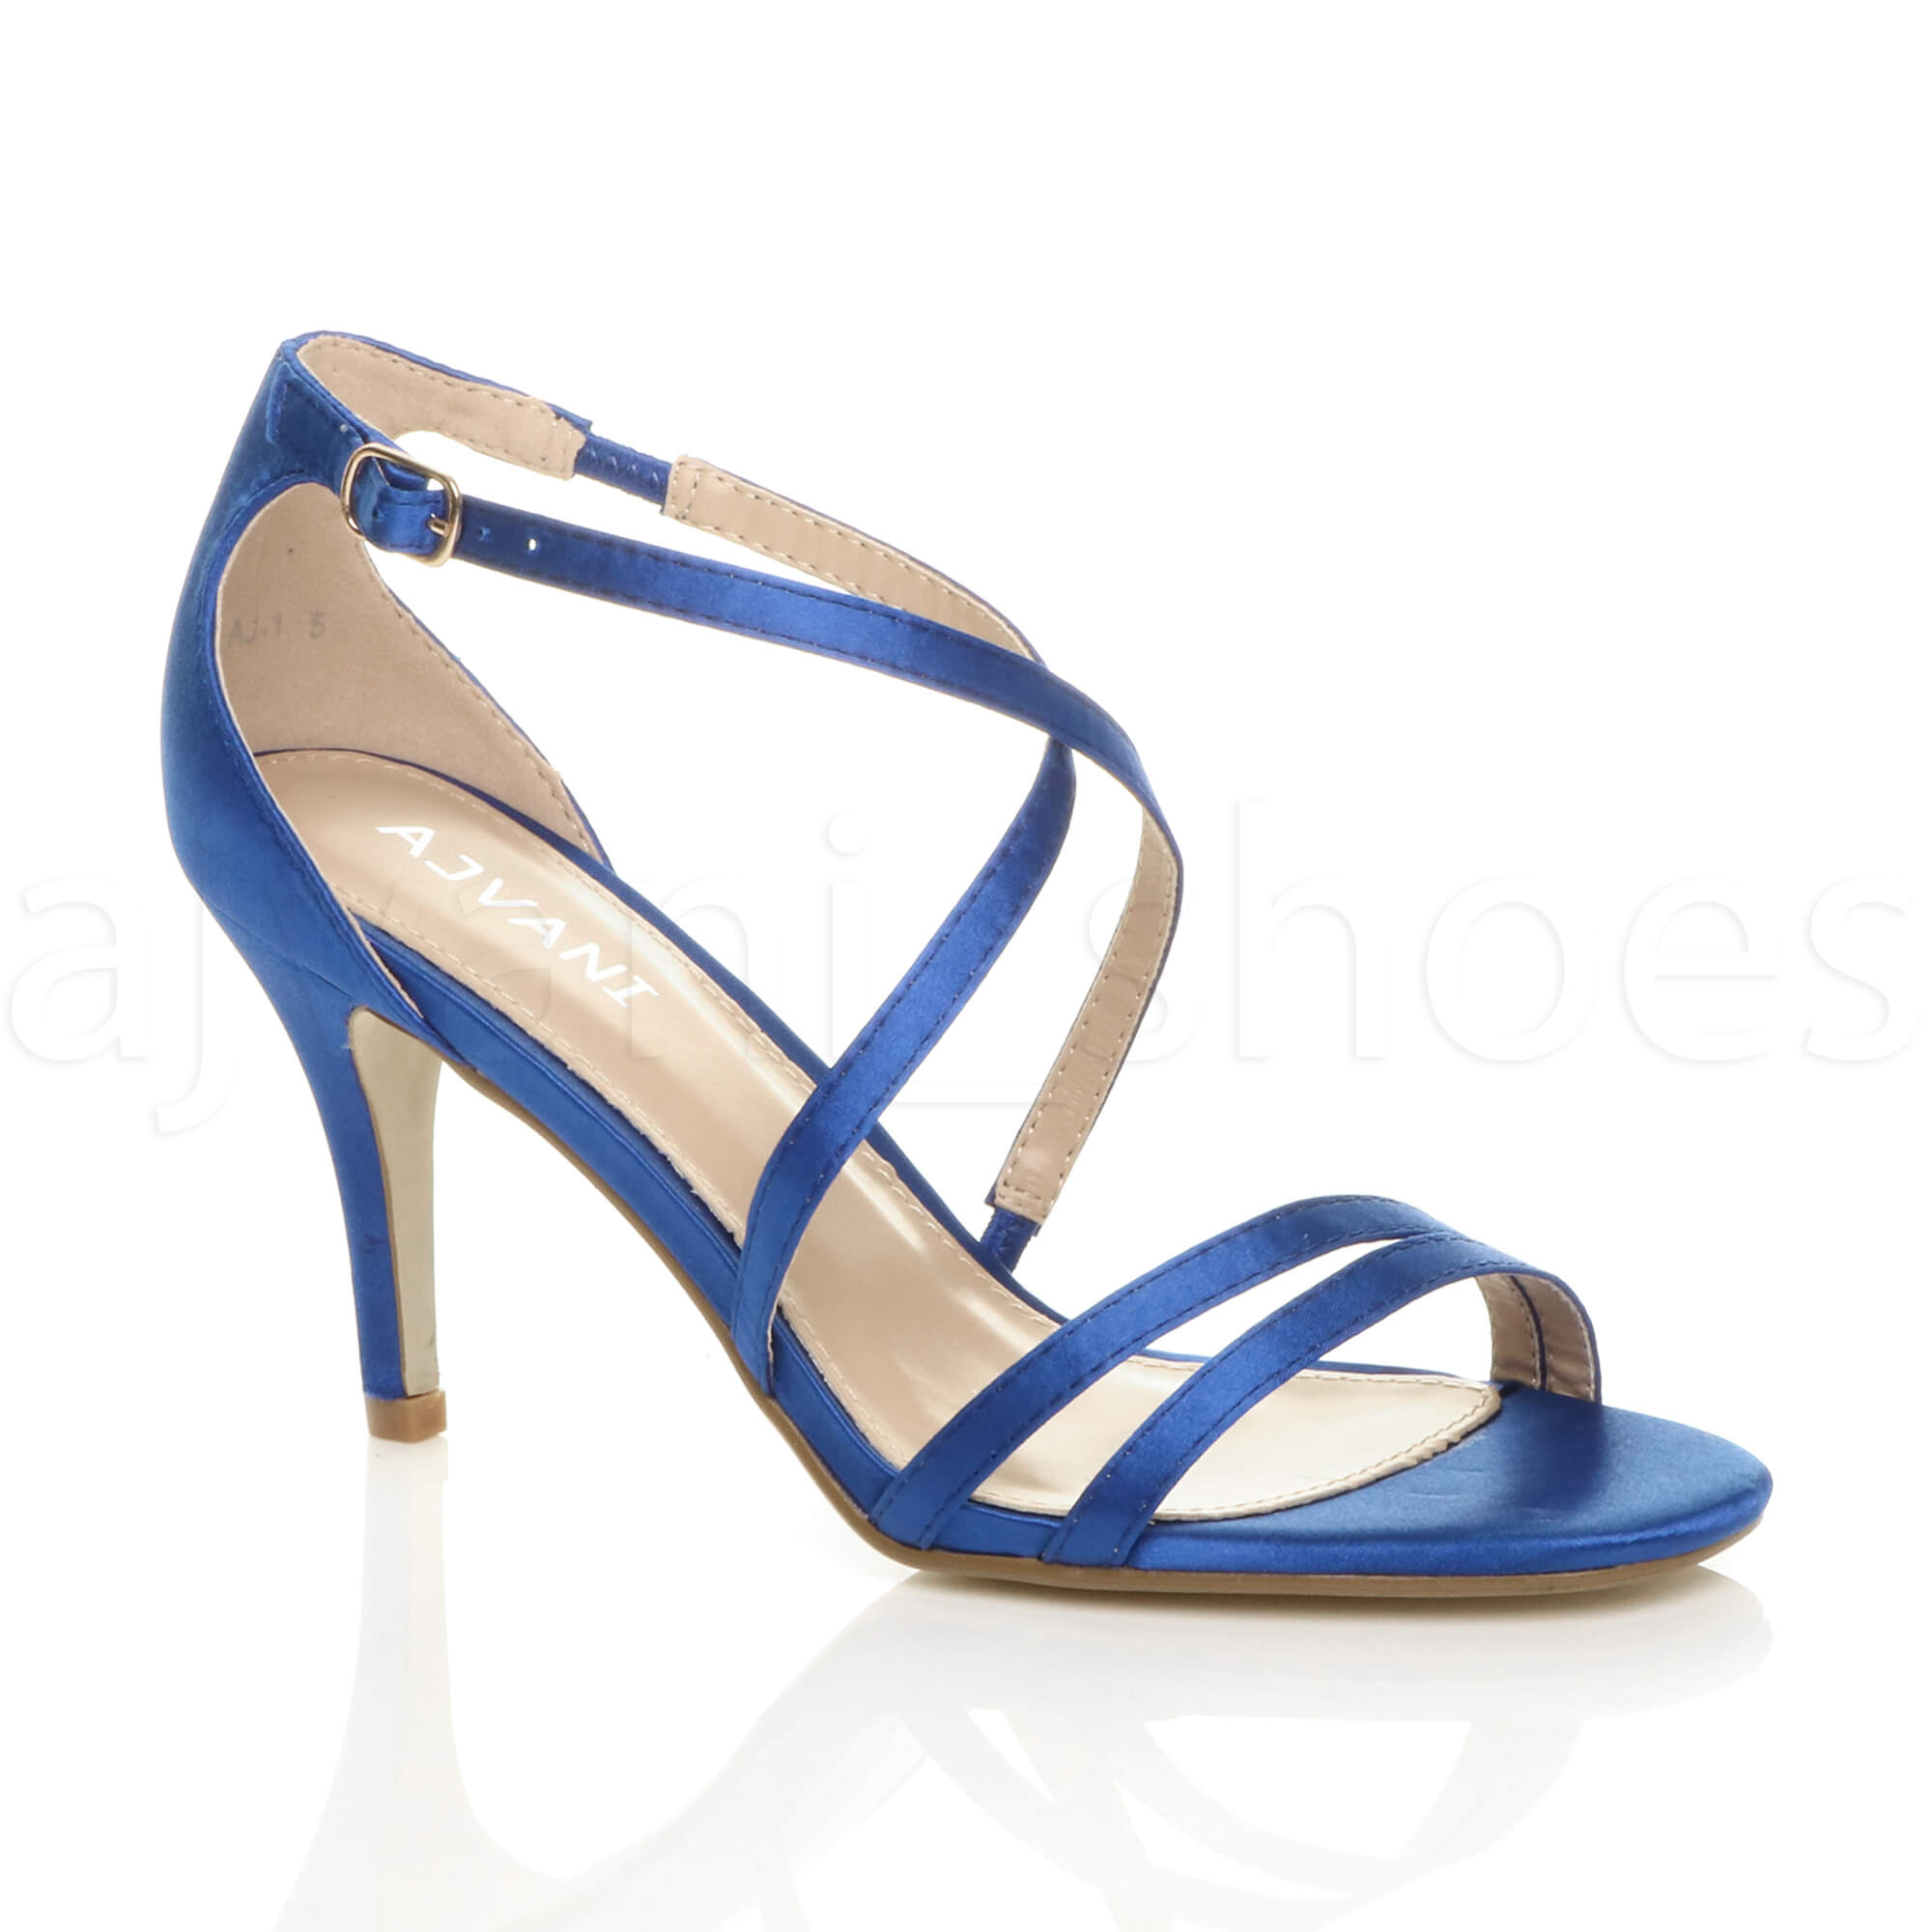 WOMENS-LADIES-MID-HIGH-HEEL-STRAPPY-CROSSOVER-WEDDING-PROM-SANDALS-SHOES-SIZE thumbnail 100